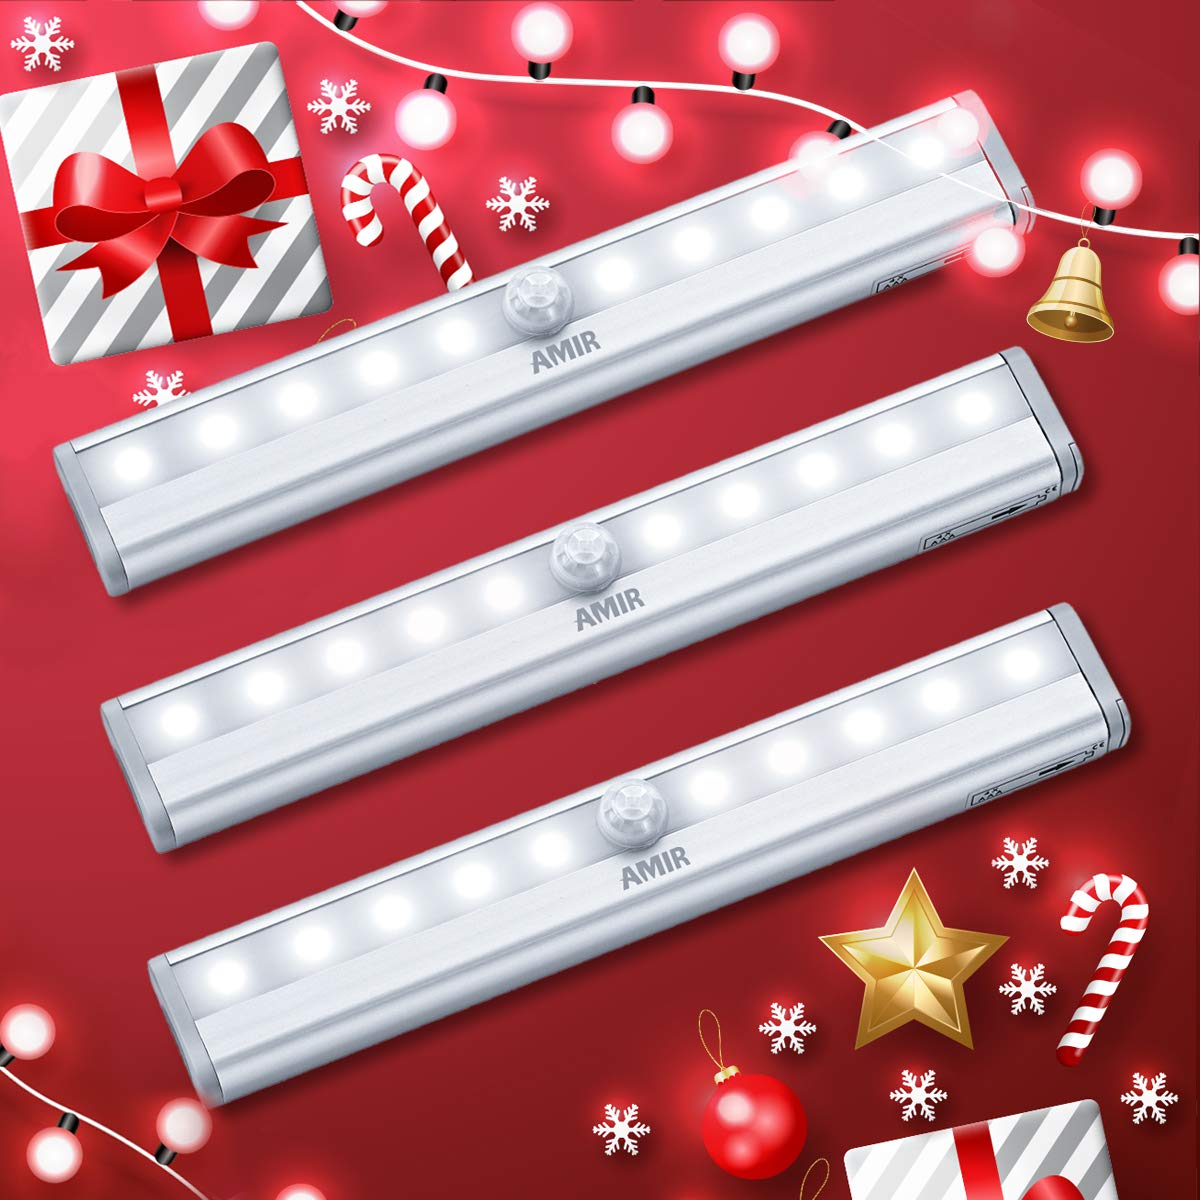 NEW VERSION AMIR Motion Sensor Lights, 10-LED DIY Stick-on Anywhere Battery Operated Portable Wireless Cabinet Night/Stairs/ Step/Closet Light Bar with Magnetic Strip (White, 3 Pack) by AMIR (Image #8)